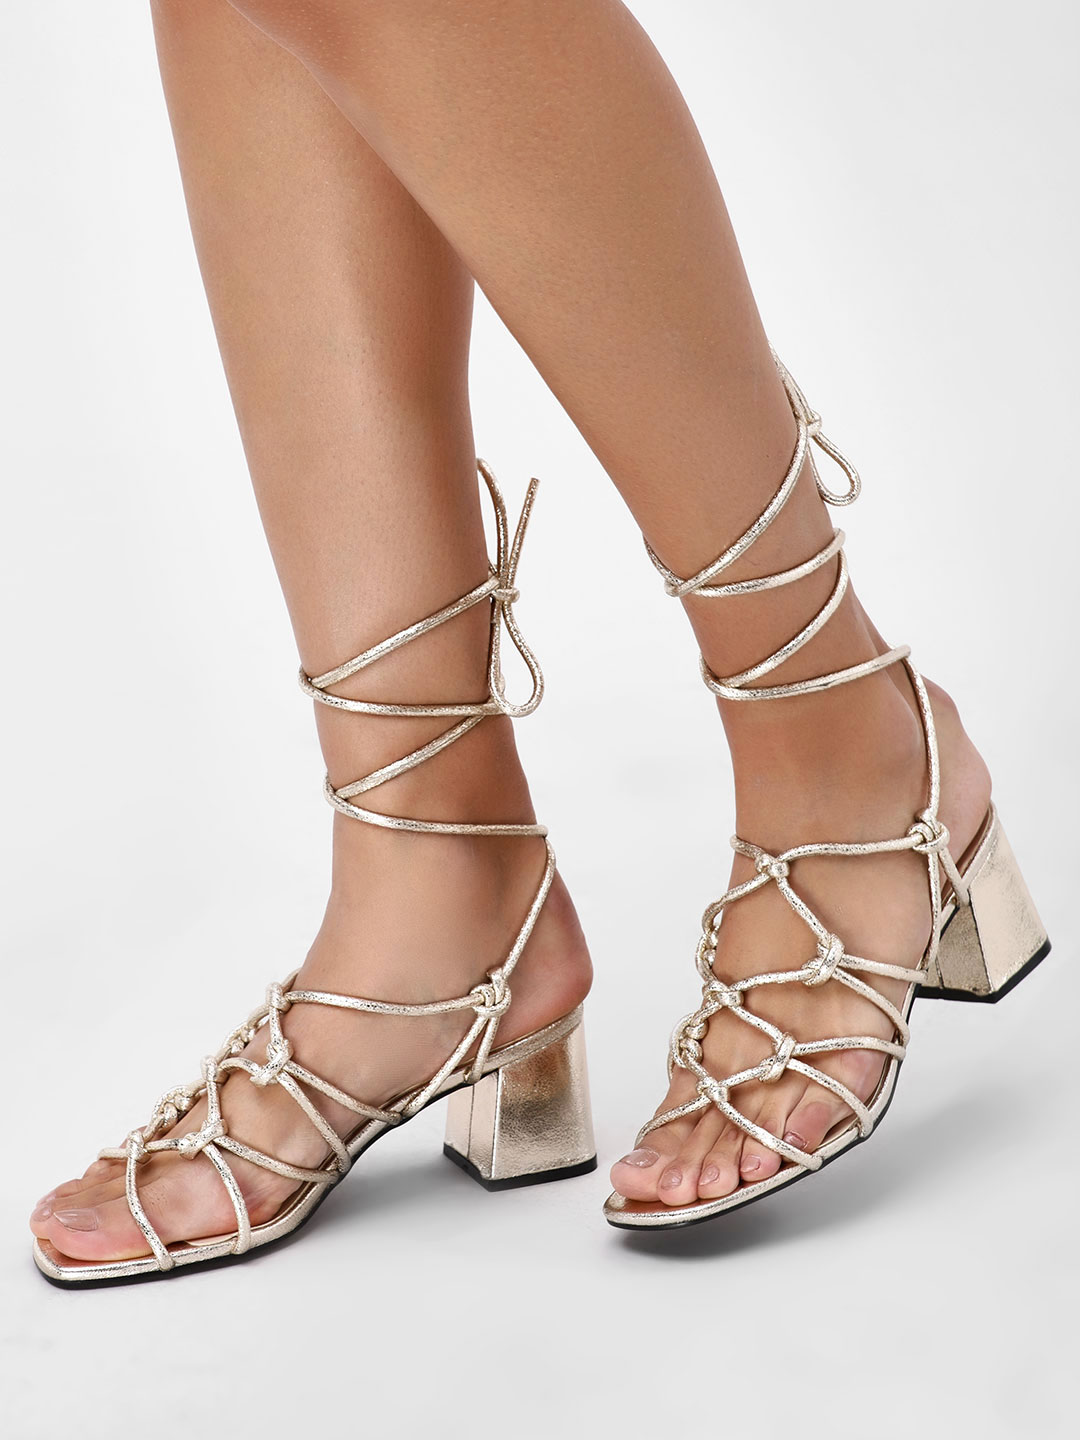 Intoto Nude Flared Mid Heel Gladiators 1